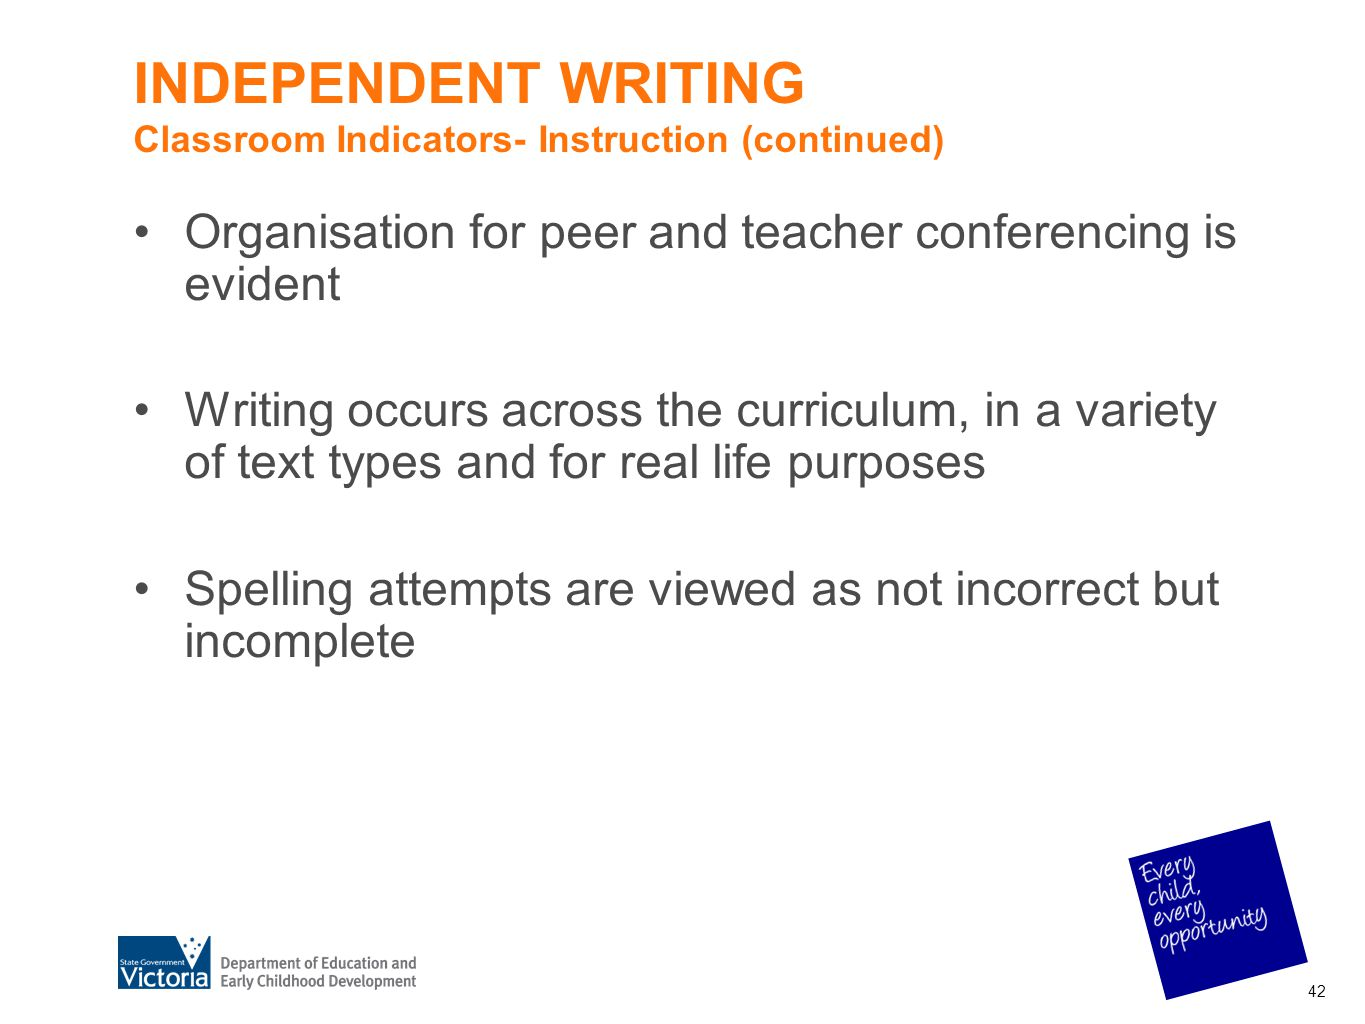 INDEPENDENT WRITING Classroom Indicators- Instruction (continued)